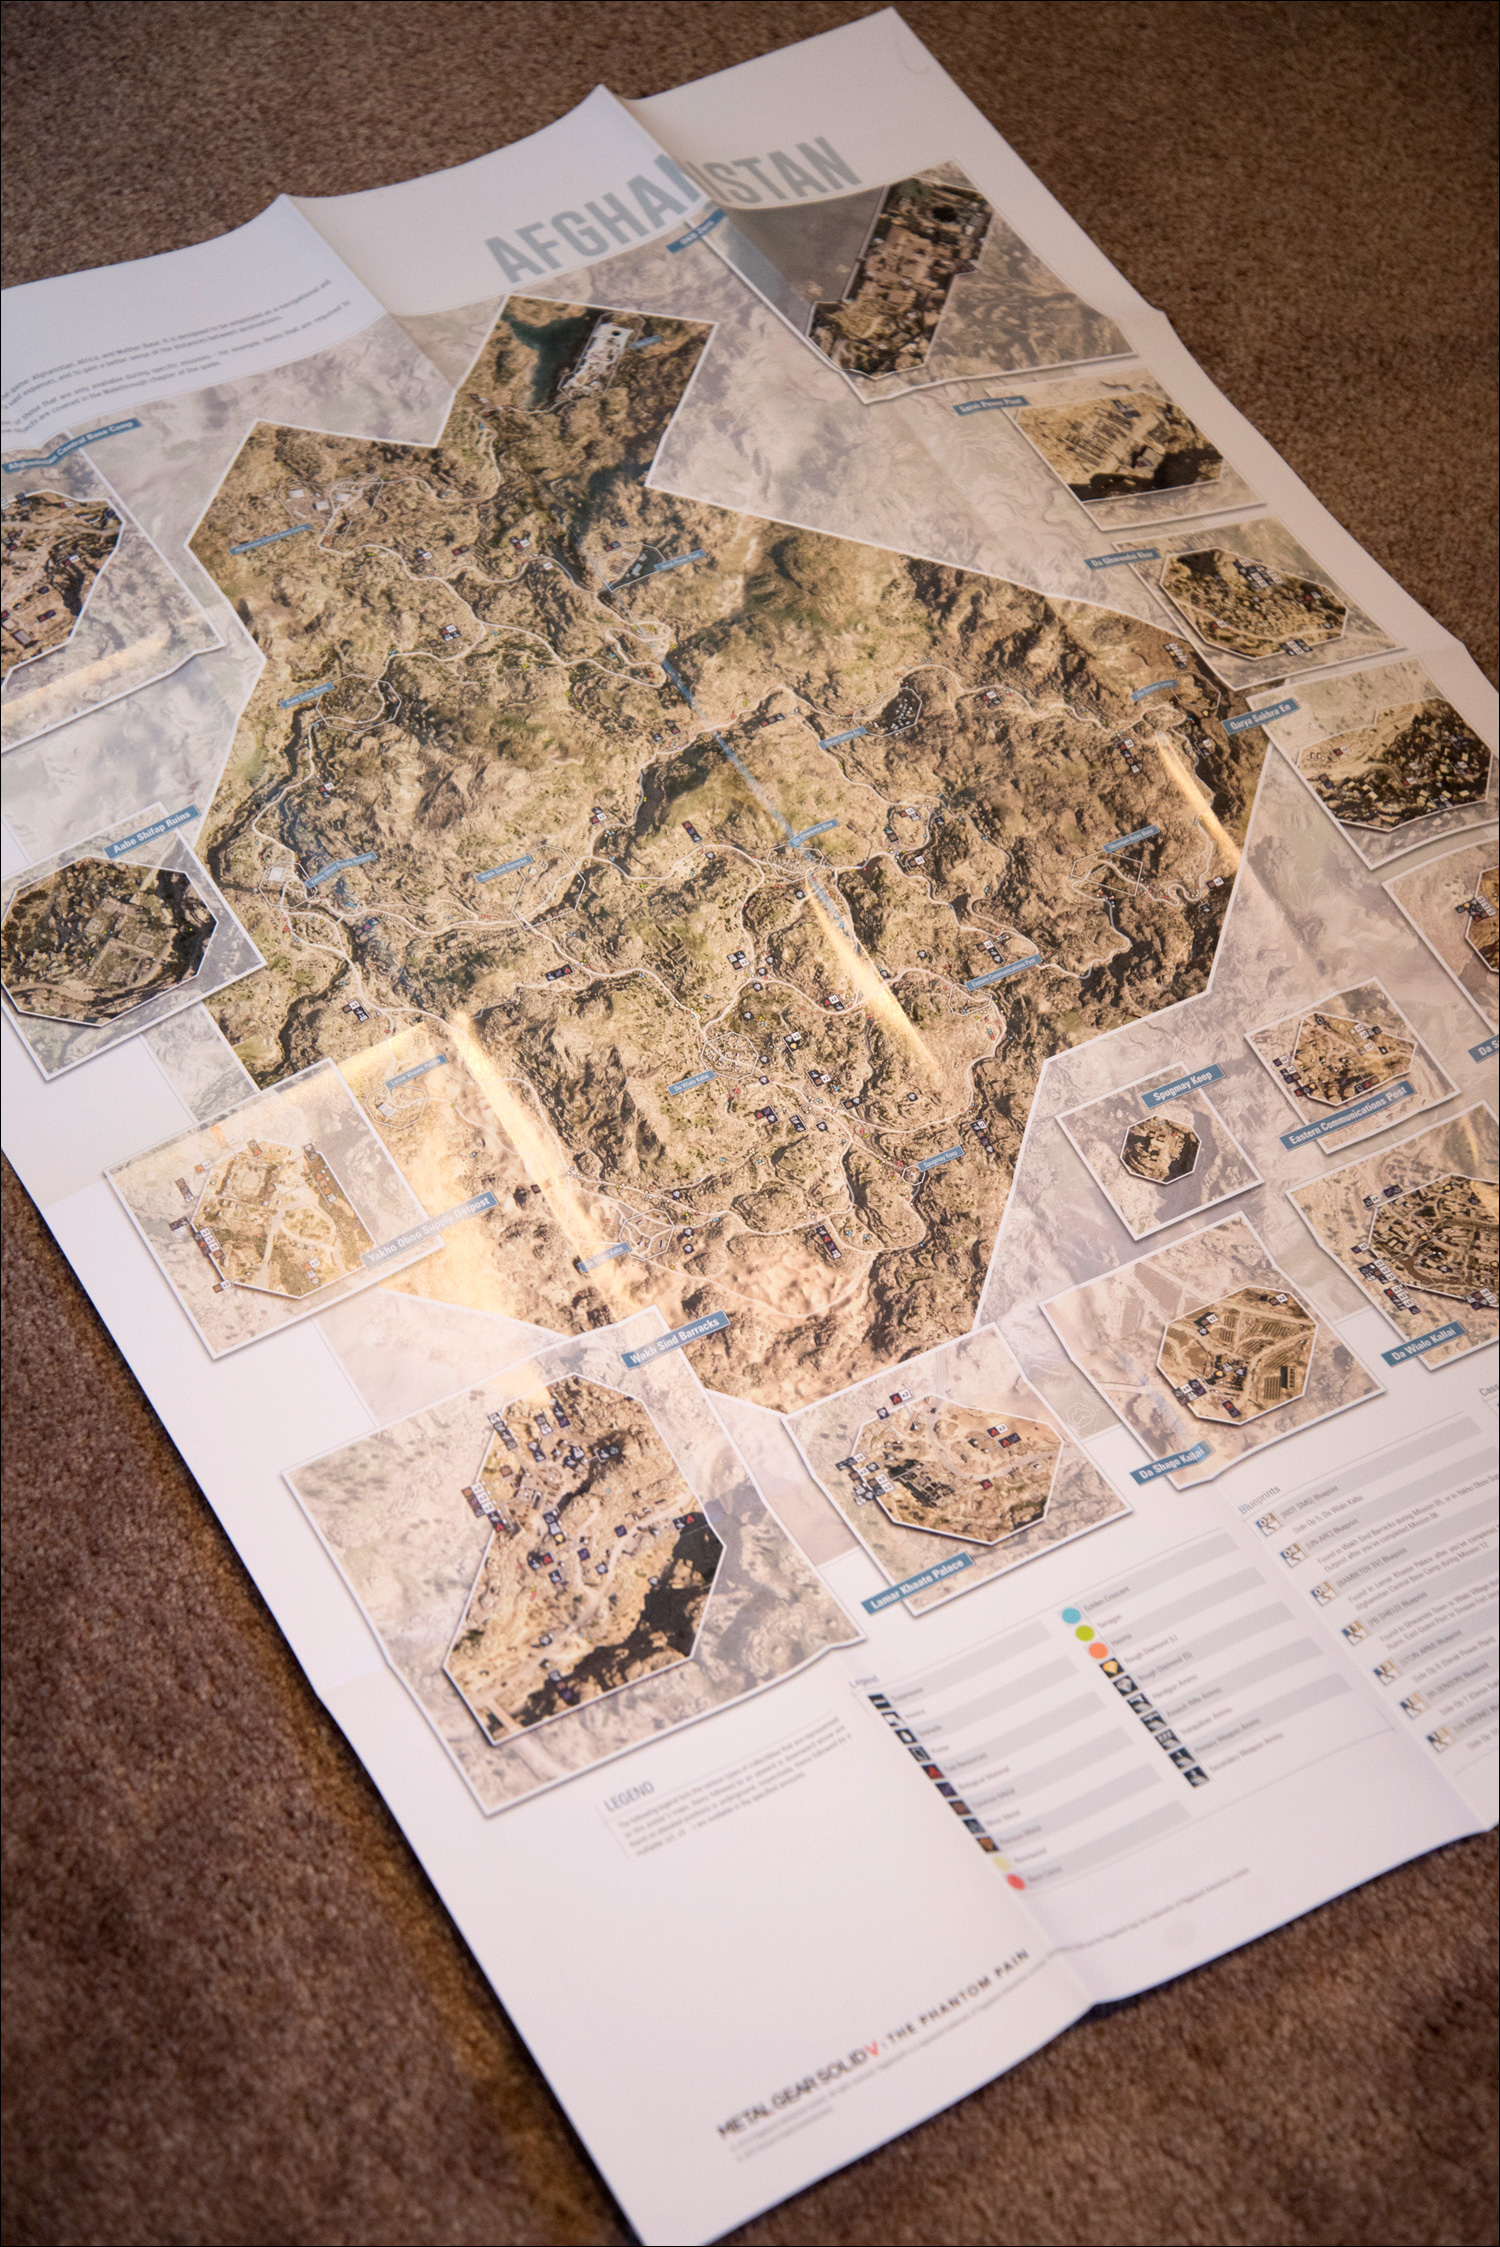 Metal-Gear-Solid-V-The-Phantom-Pain-Collector's-Edition-Guide-Map-Afghanistan